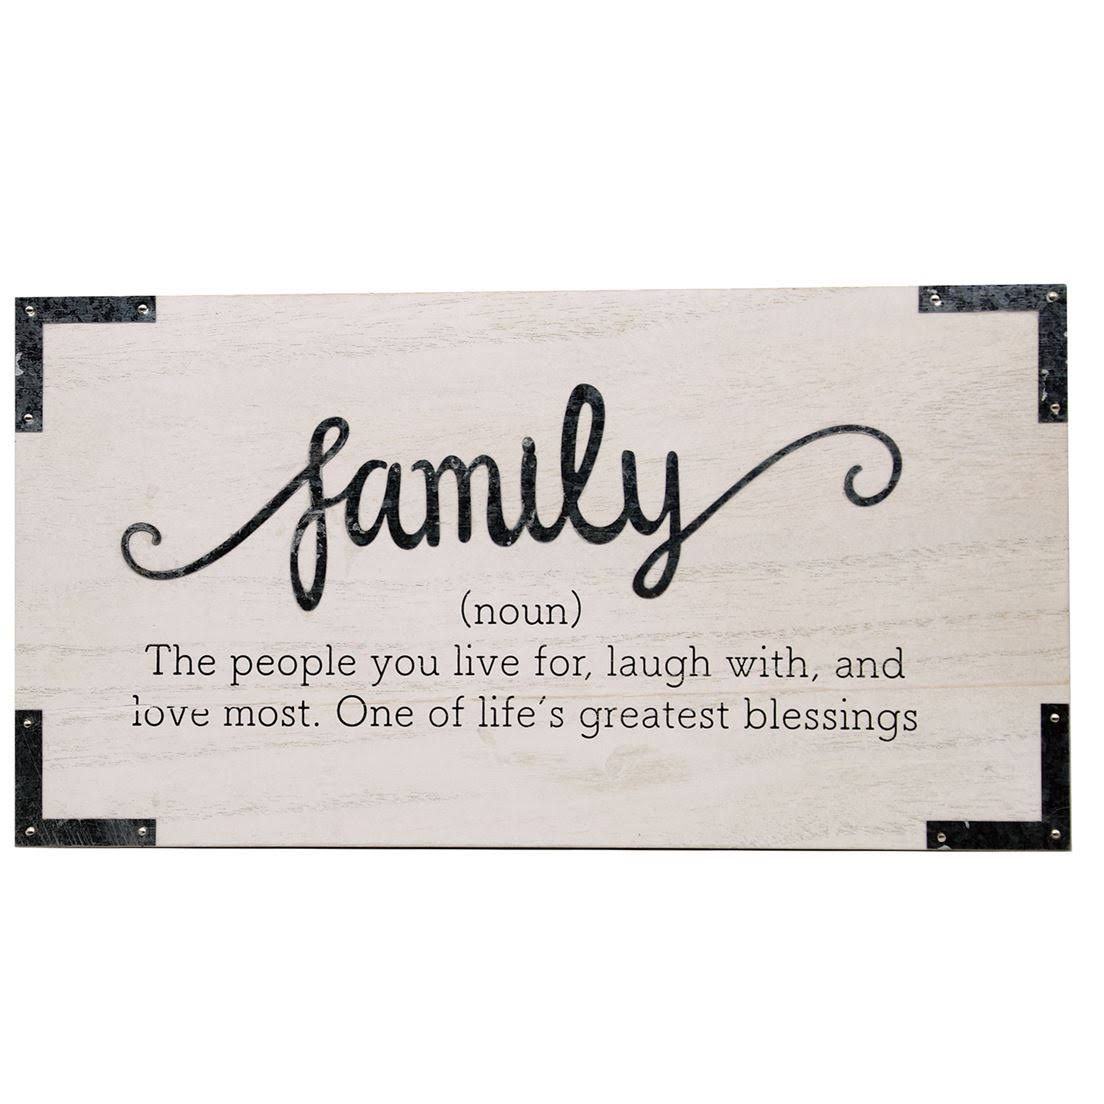 Dennis East 11930 - Family Wall Sign Size: 8 inch x 15 inch Wall Decor Word Art